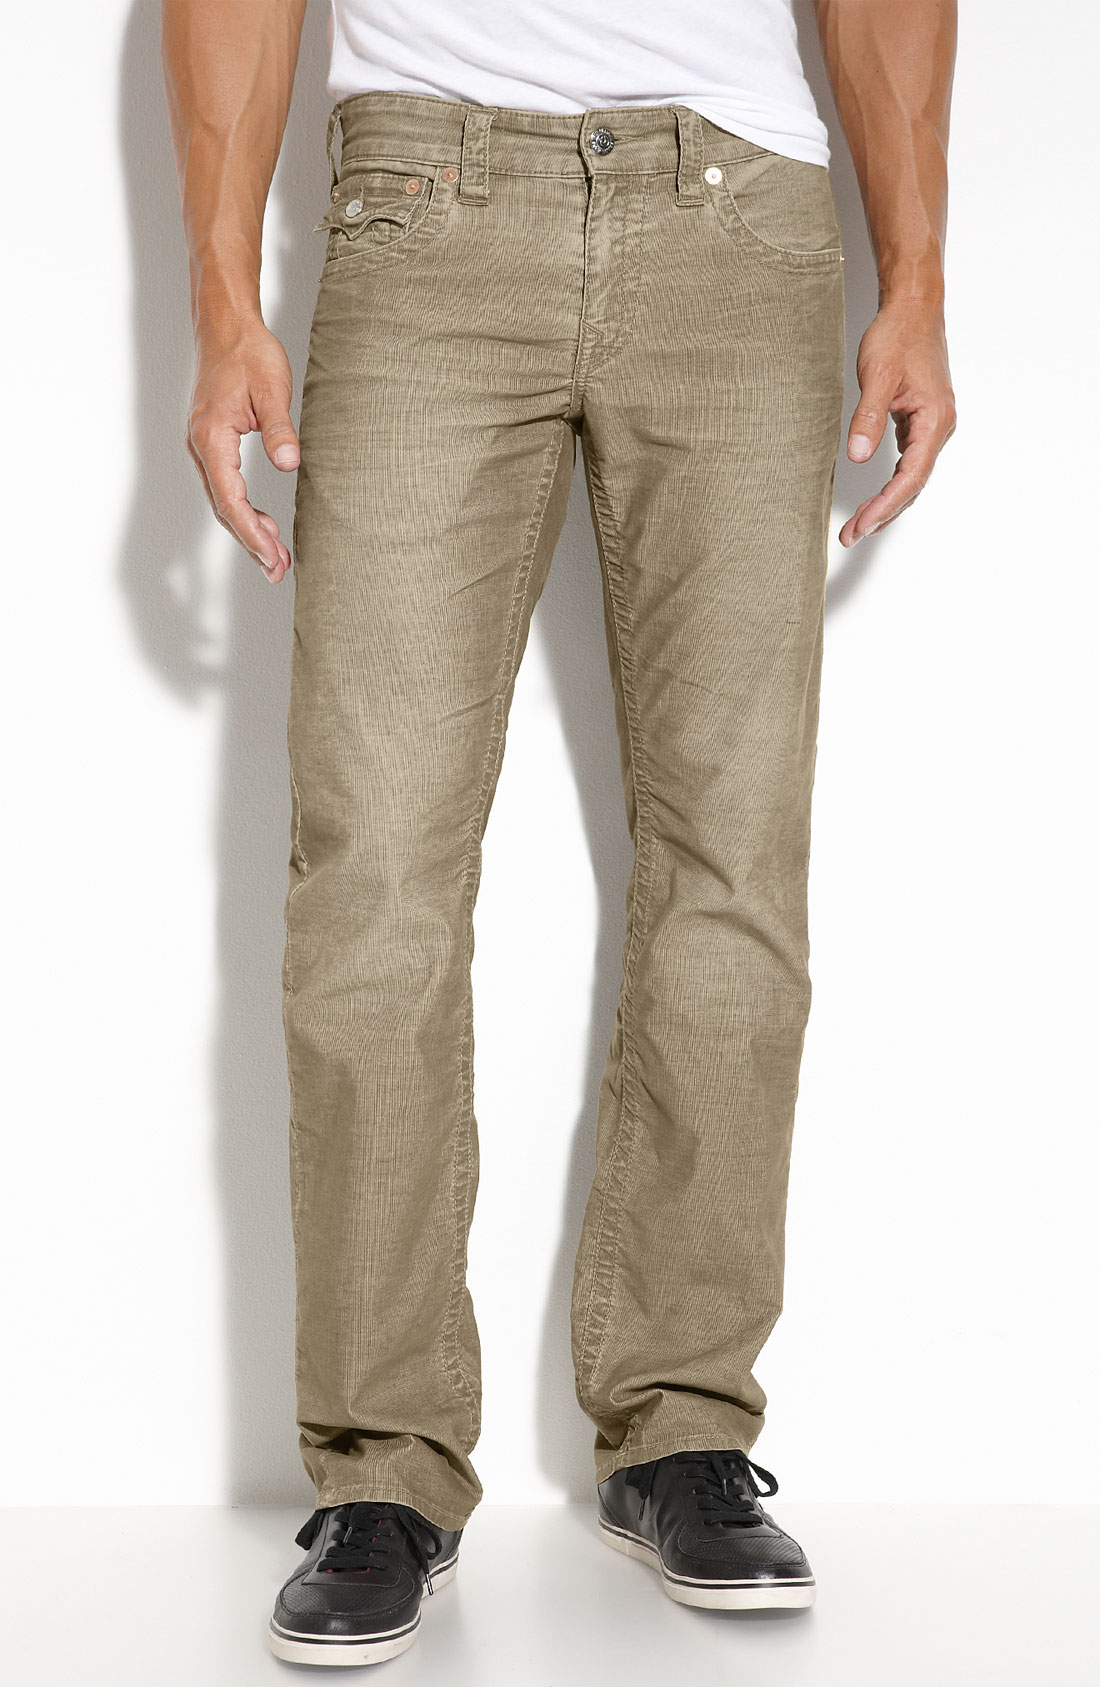 Trouser Corduroy Pants: Irresistibly soft corduroy pants with classic trouser styling and a hint of stretch for a comfortable fit. Fly front, double-button waist Side slash pockets; back besom pockets.